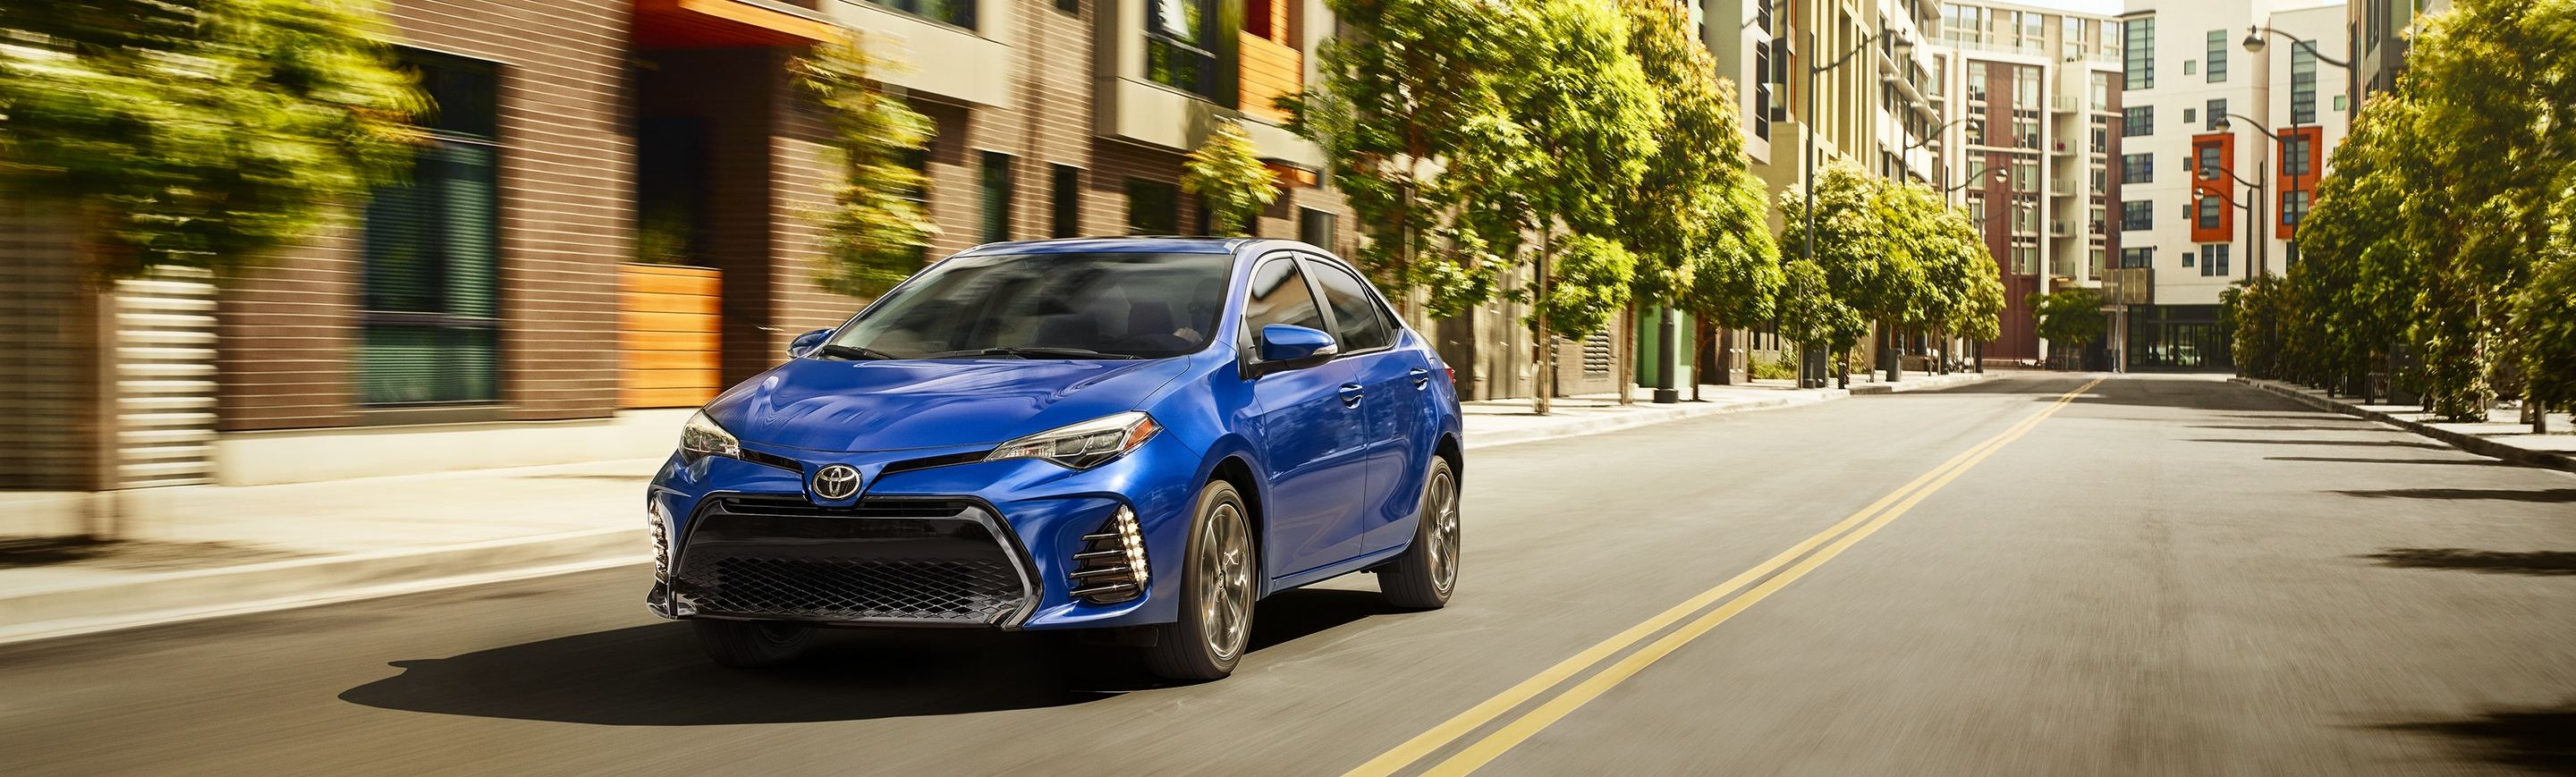 Used Toyota Vehicles for Sale in Tinley Park, IL